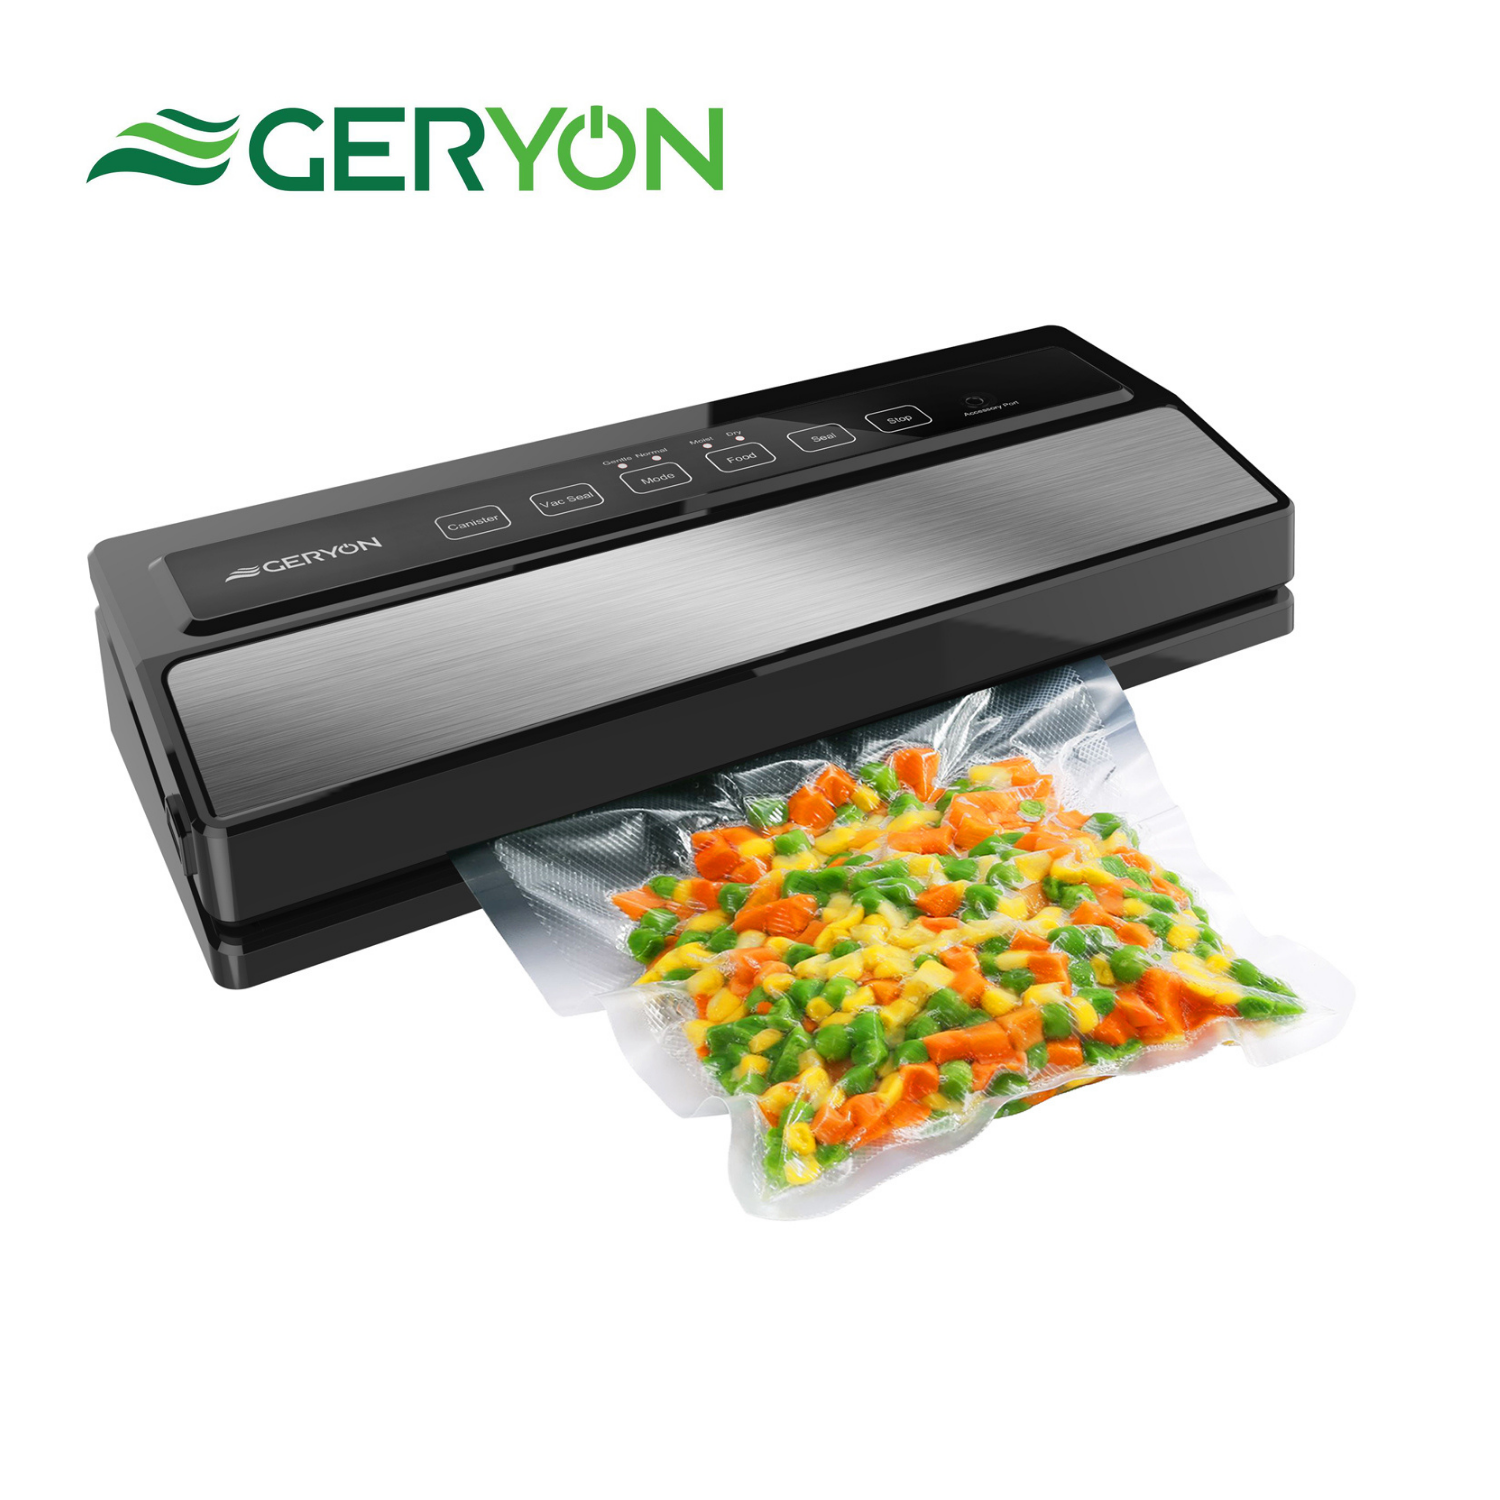 GERYON Best Vacuum Sealer Machine 220V/110V Automatic Dry and Moist Food Modes Degasser Vacuum Packer with 5pcs Packing Bags